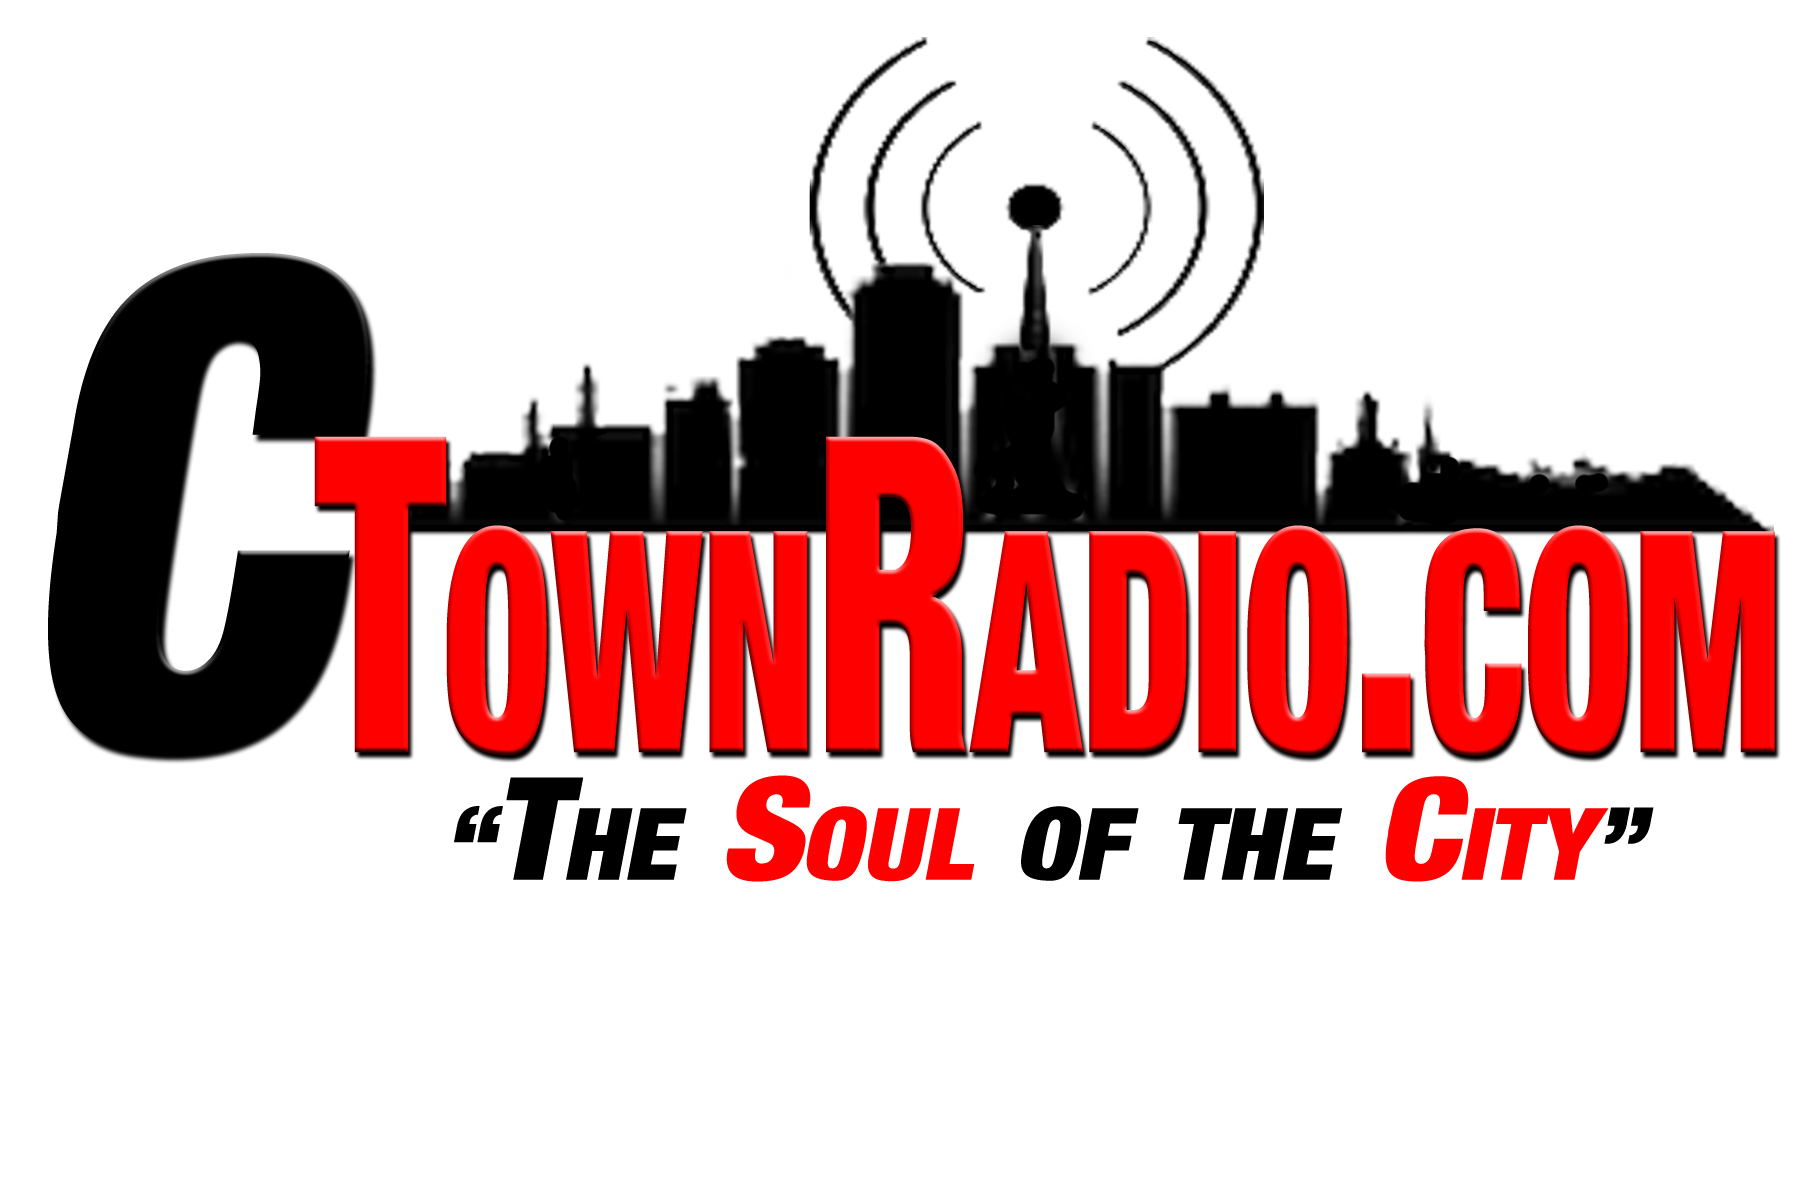 Art for The Sound of Canton by C TOWN RADIO